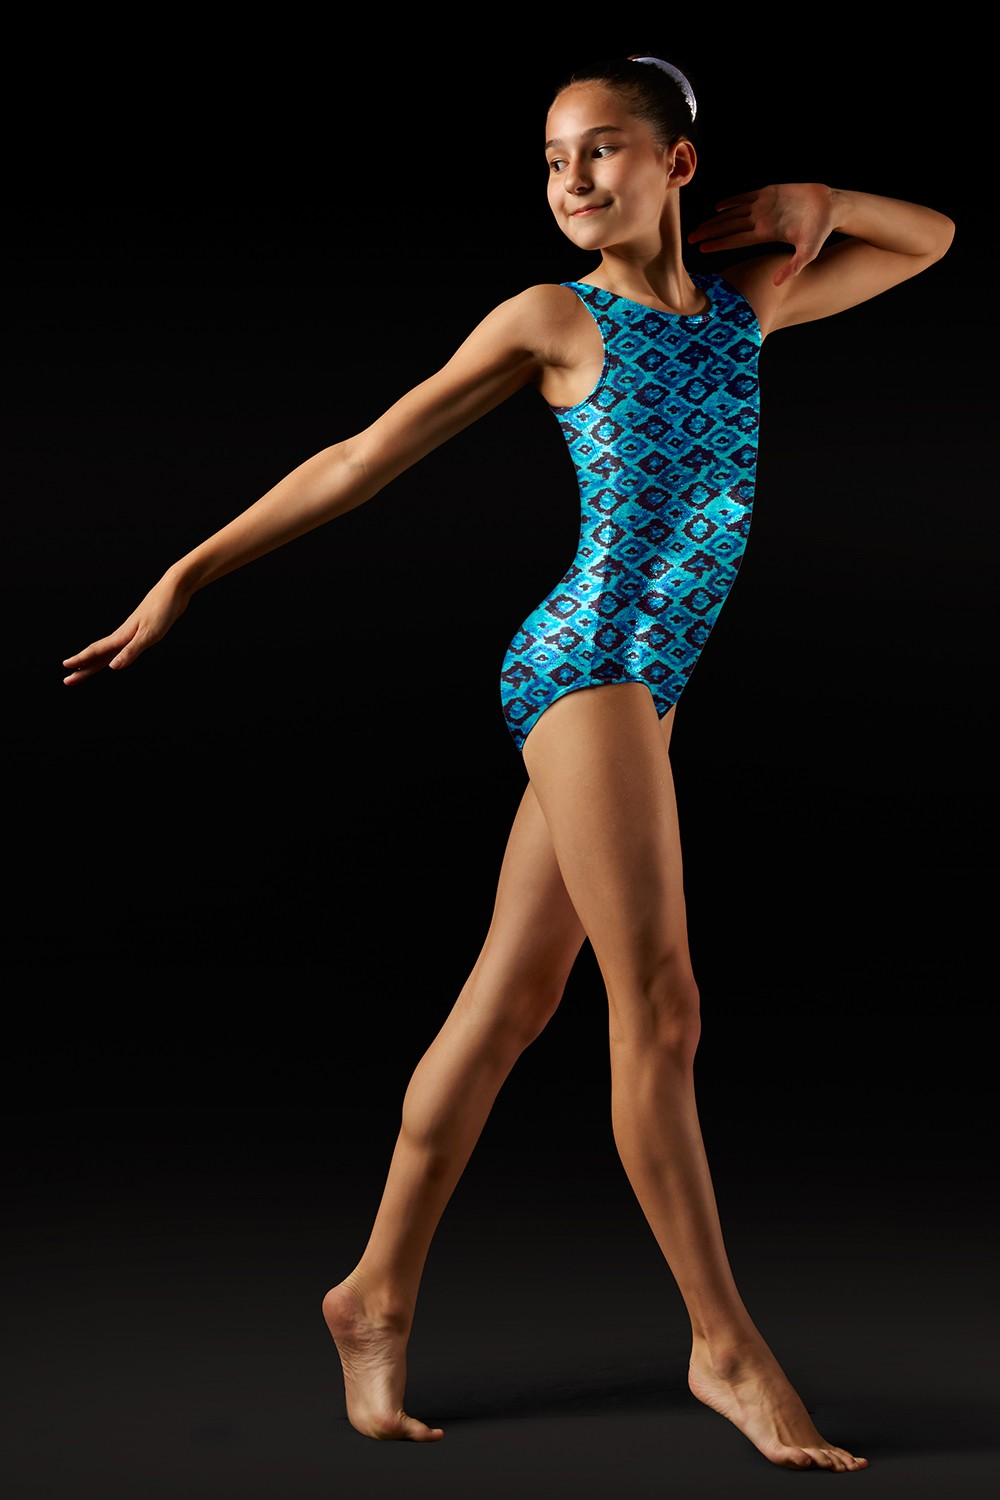 Aztec Print Tank Leo Women's Gymnastics Leotards